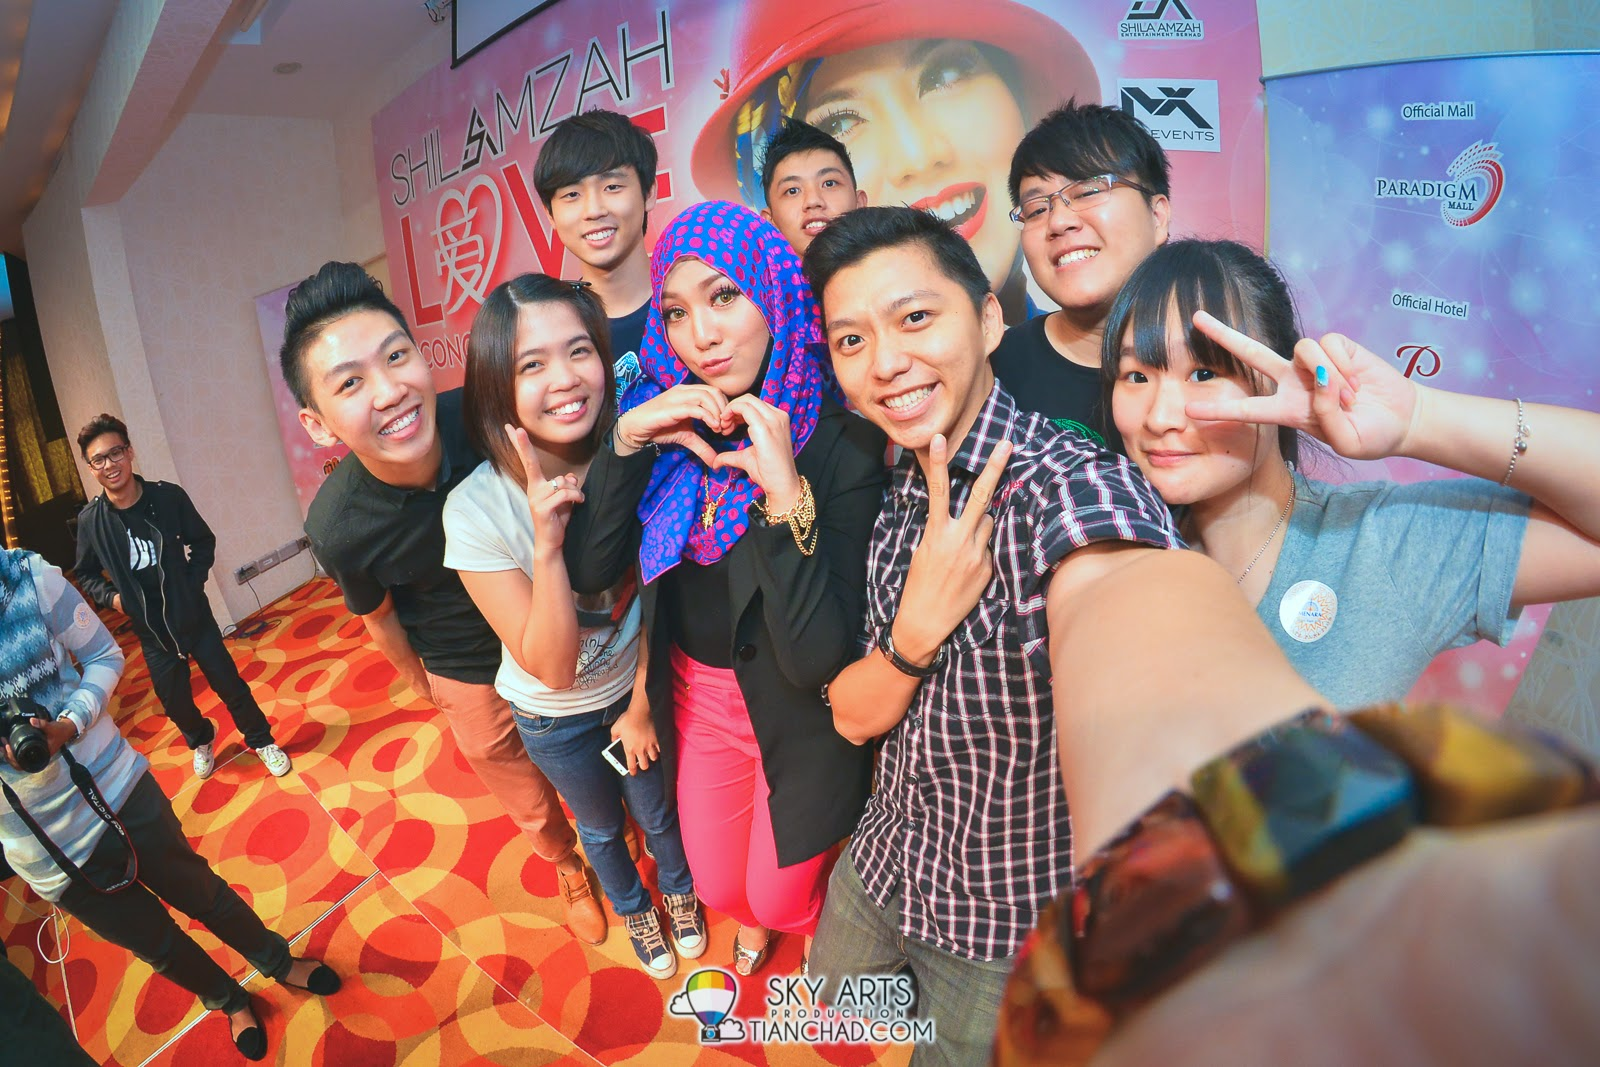 A successful love #TCSelfie with Shila Amzah and media friends!